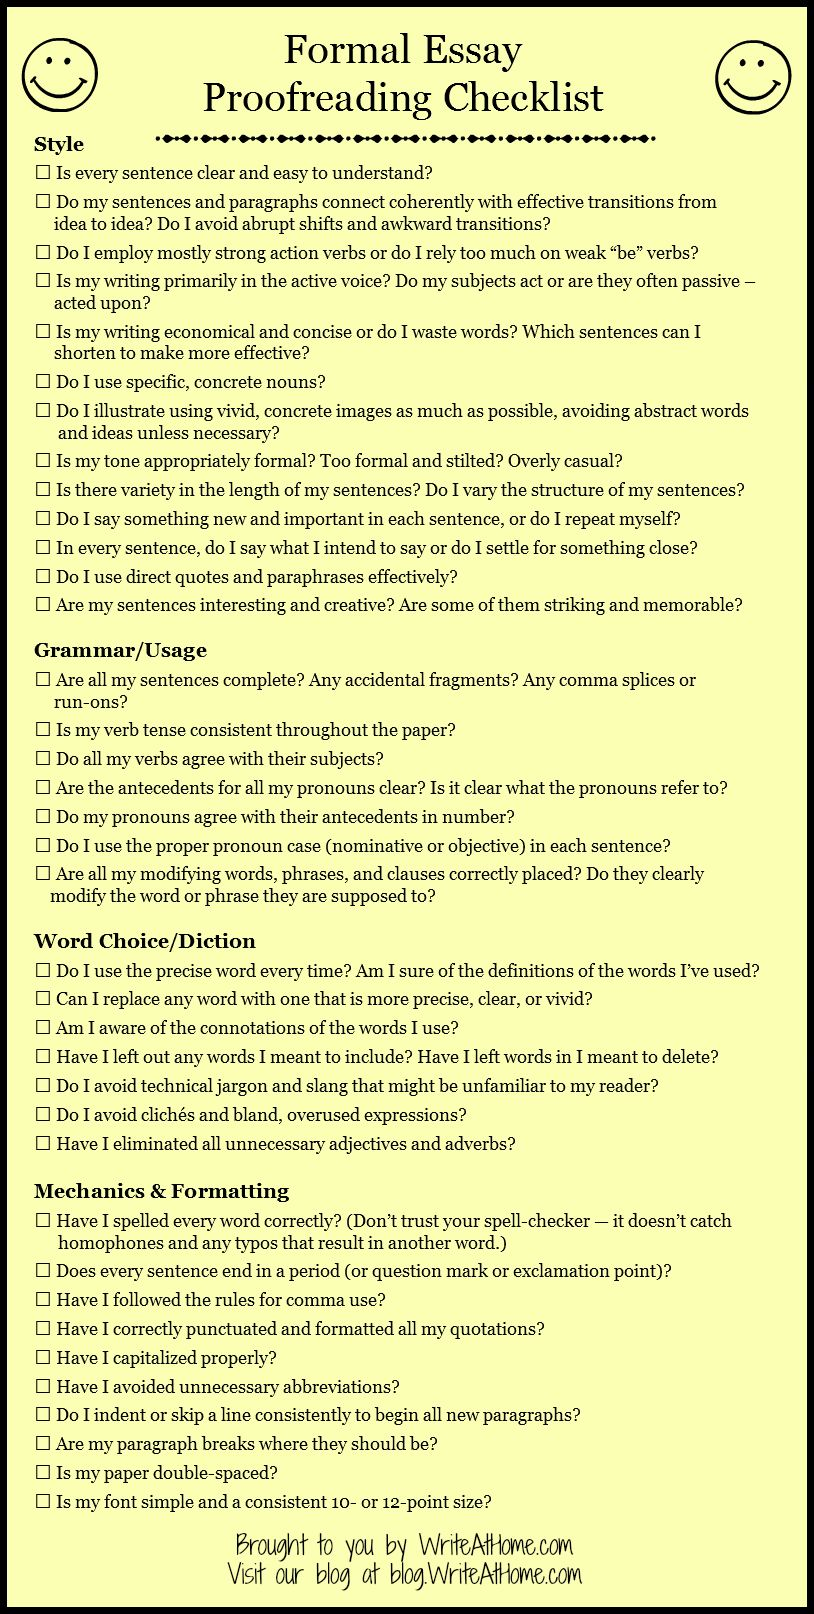 basic essay proofreading checklist could make into a rubric basic essay proofreading checklist could make into a rubric